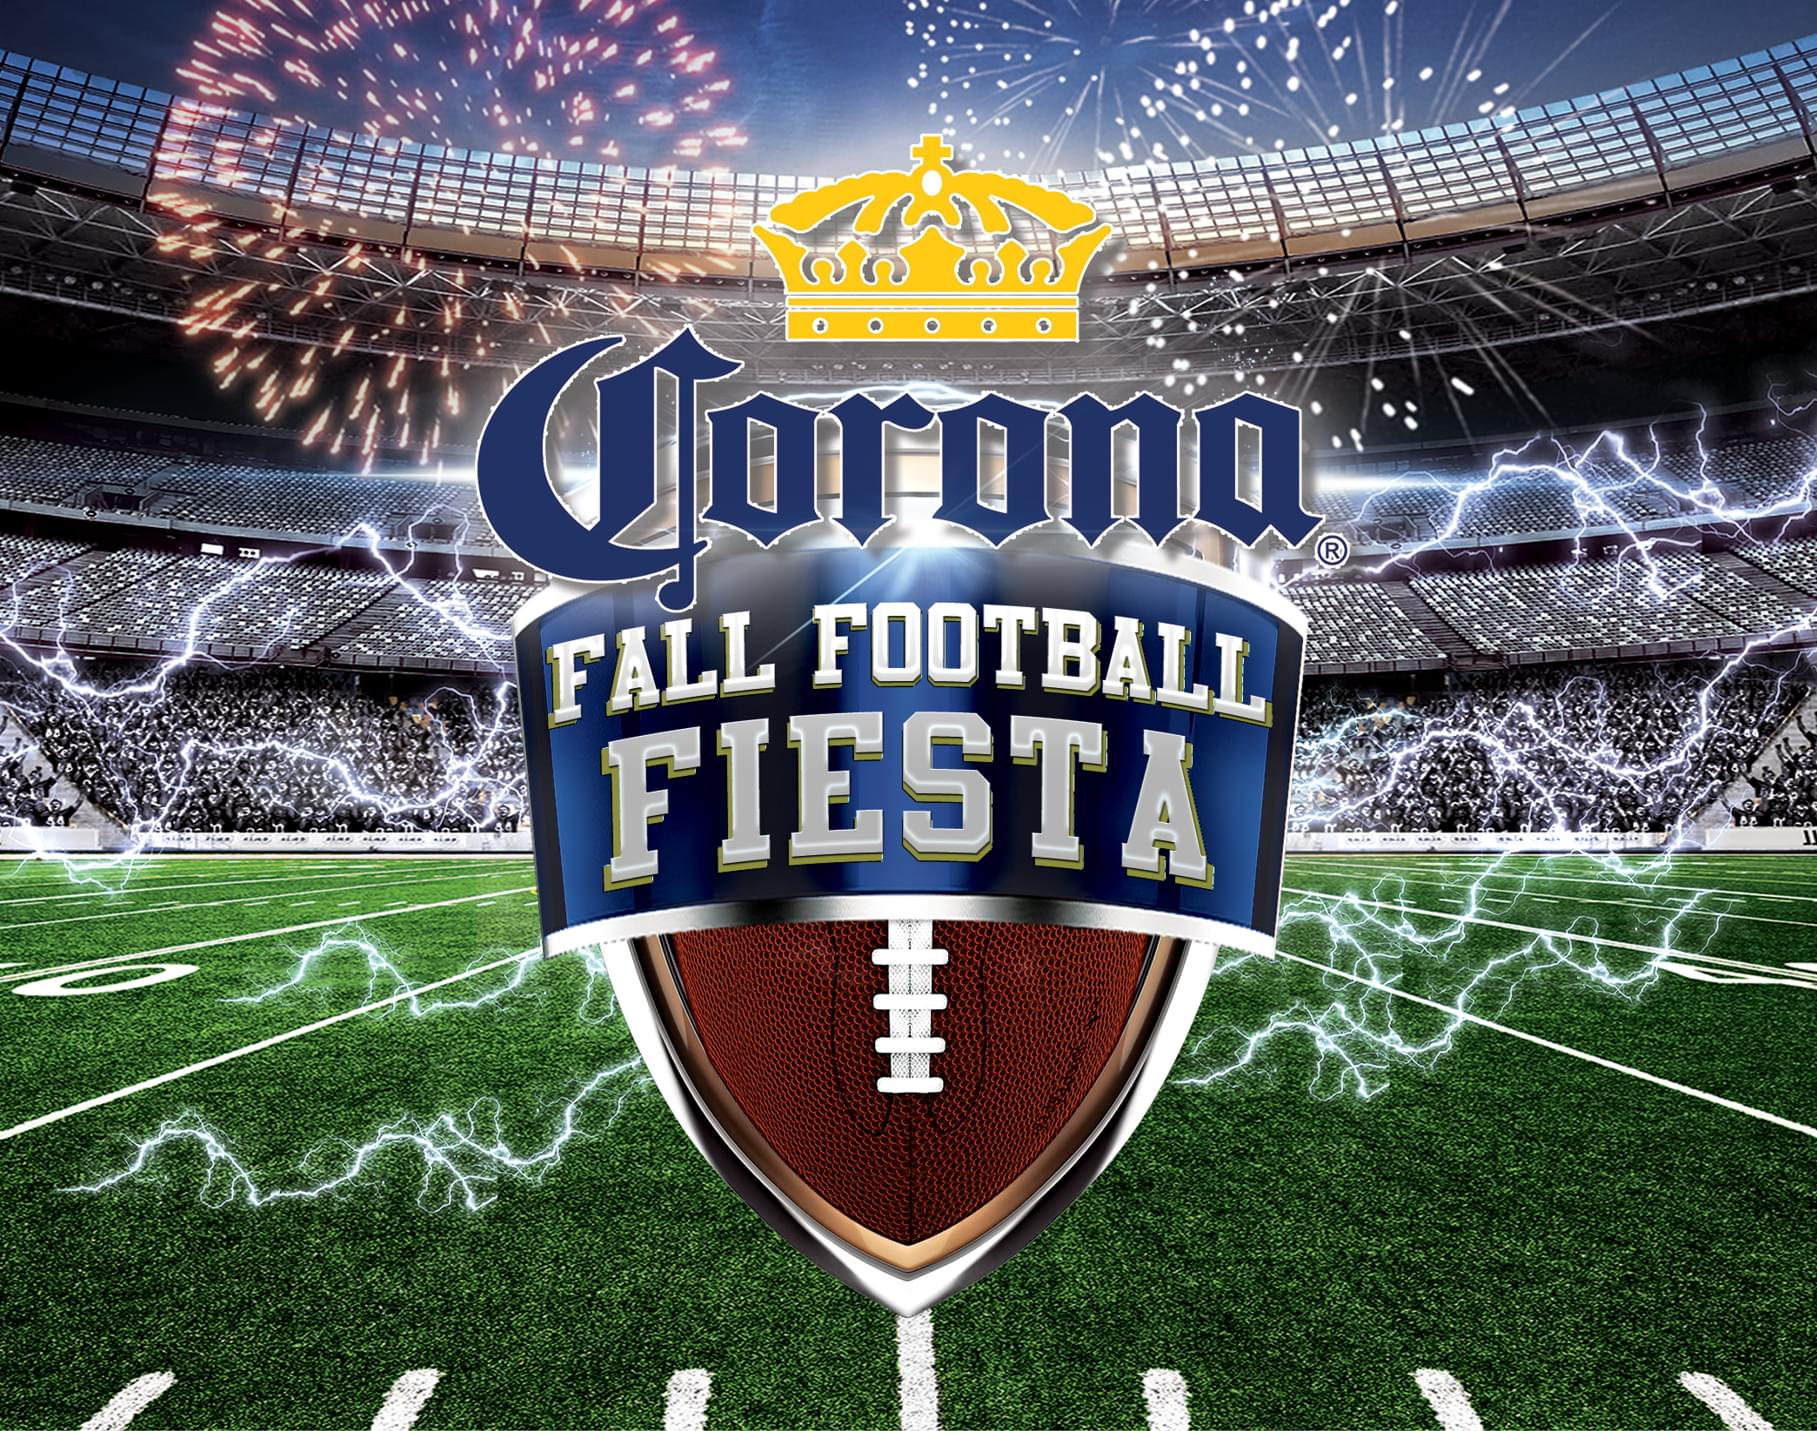 2018 Fall Football Fiesta